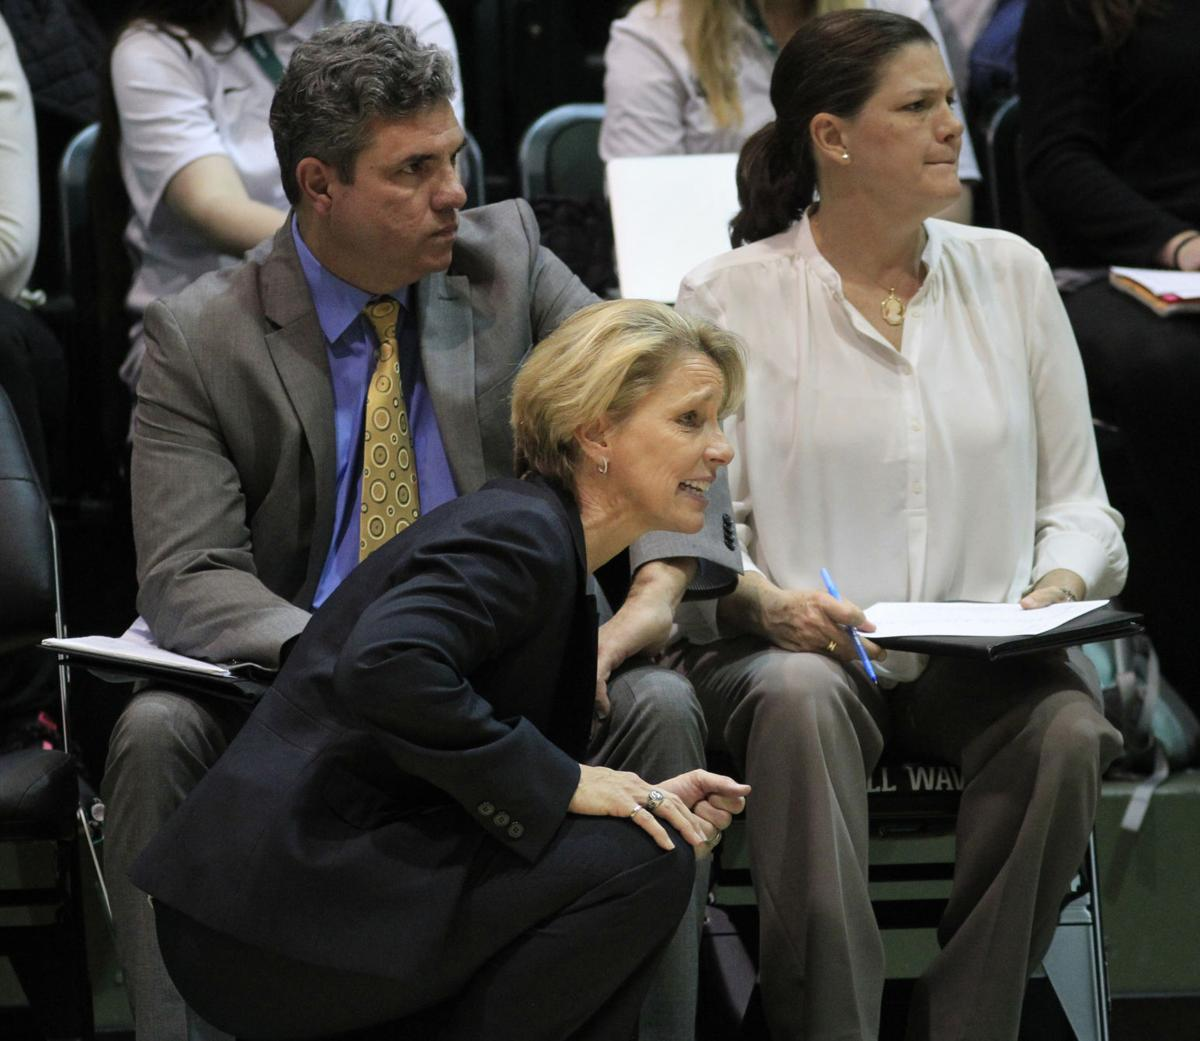 c6ec18a09cc8 Tulane coach Lisa Stockton one win away from No. 500 as Wave faces Nicholls